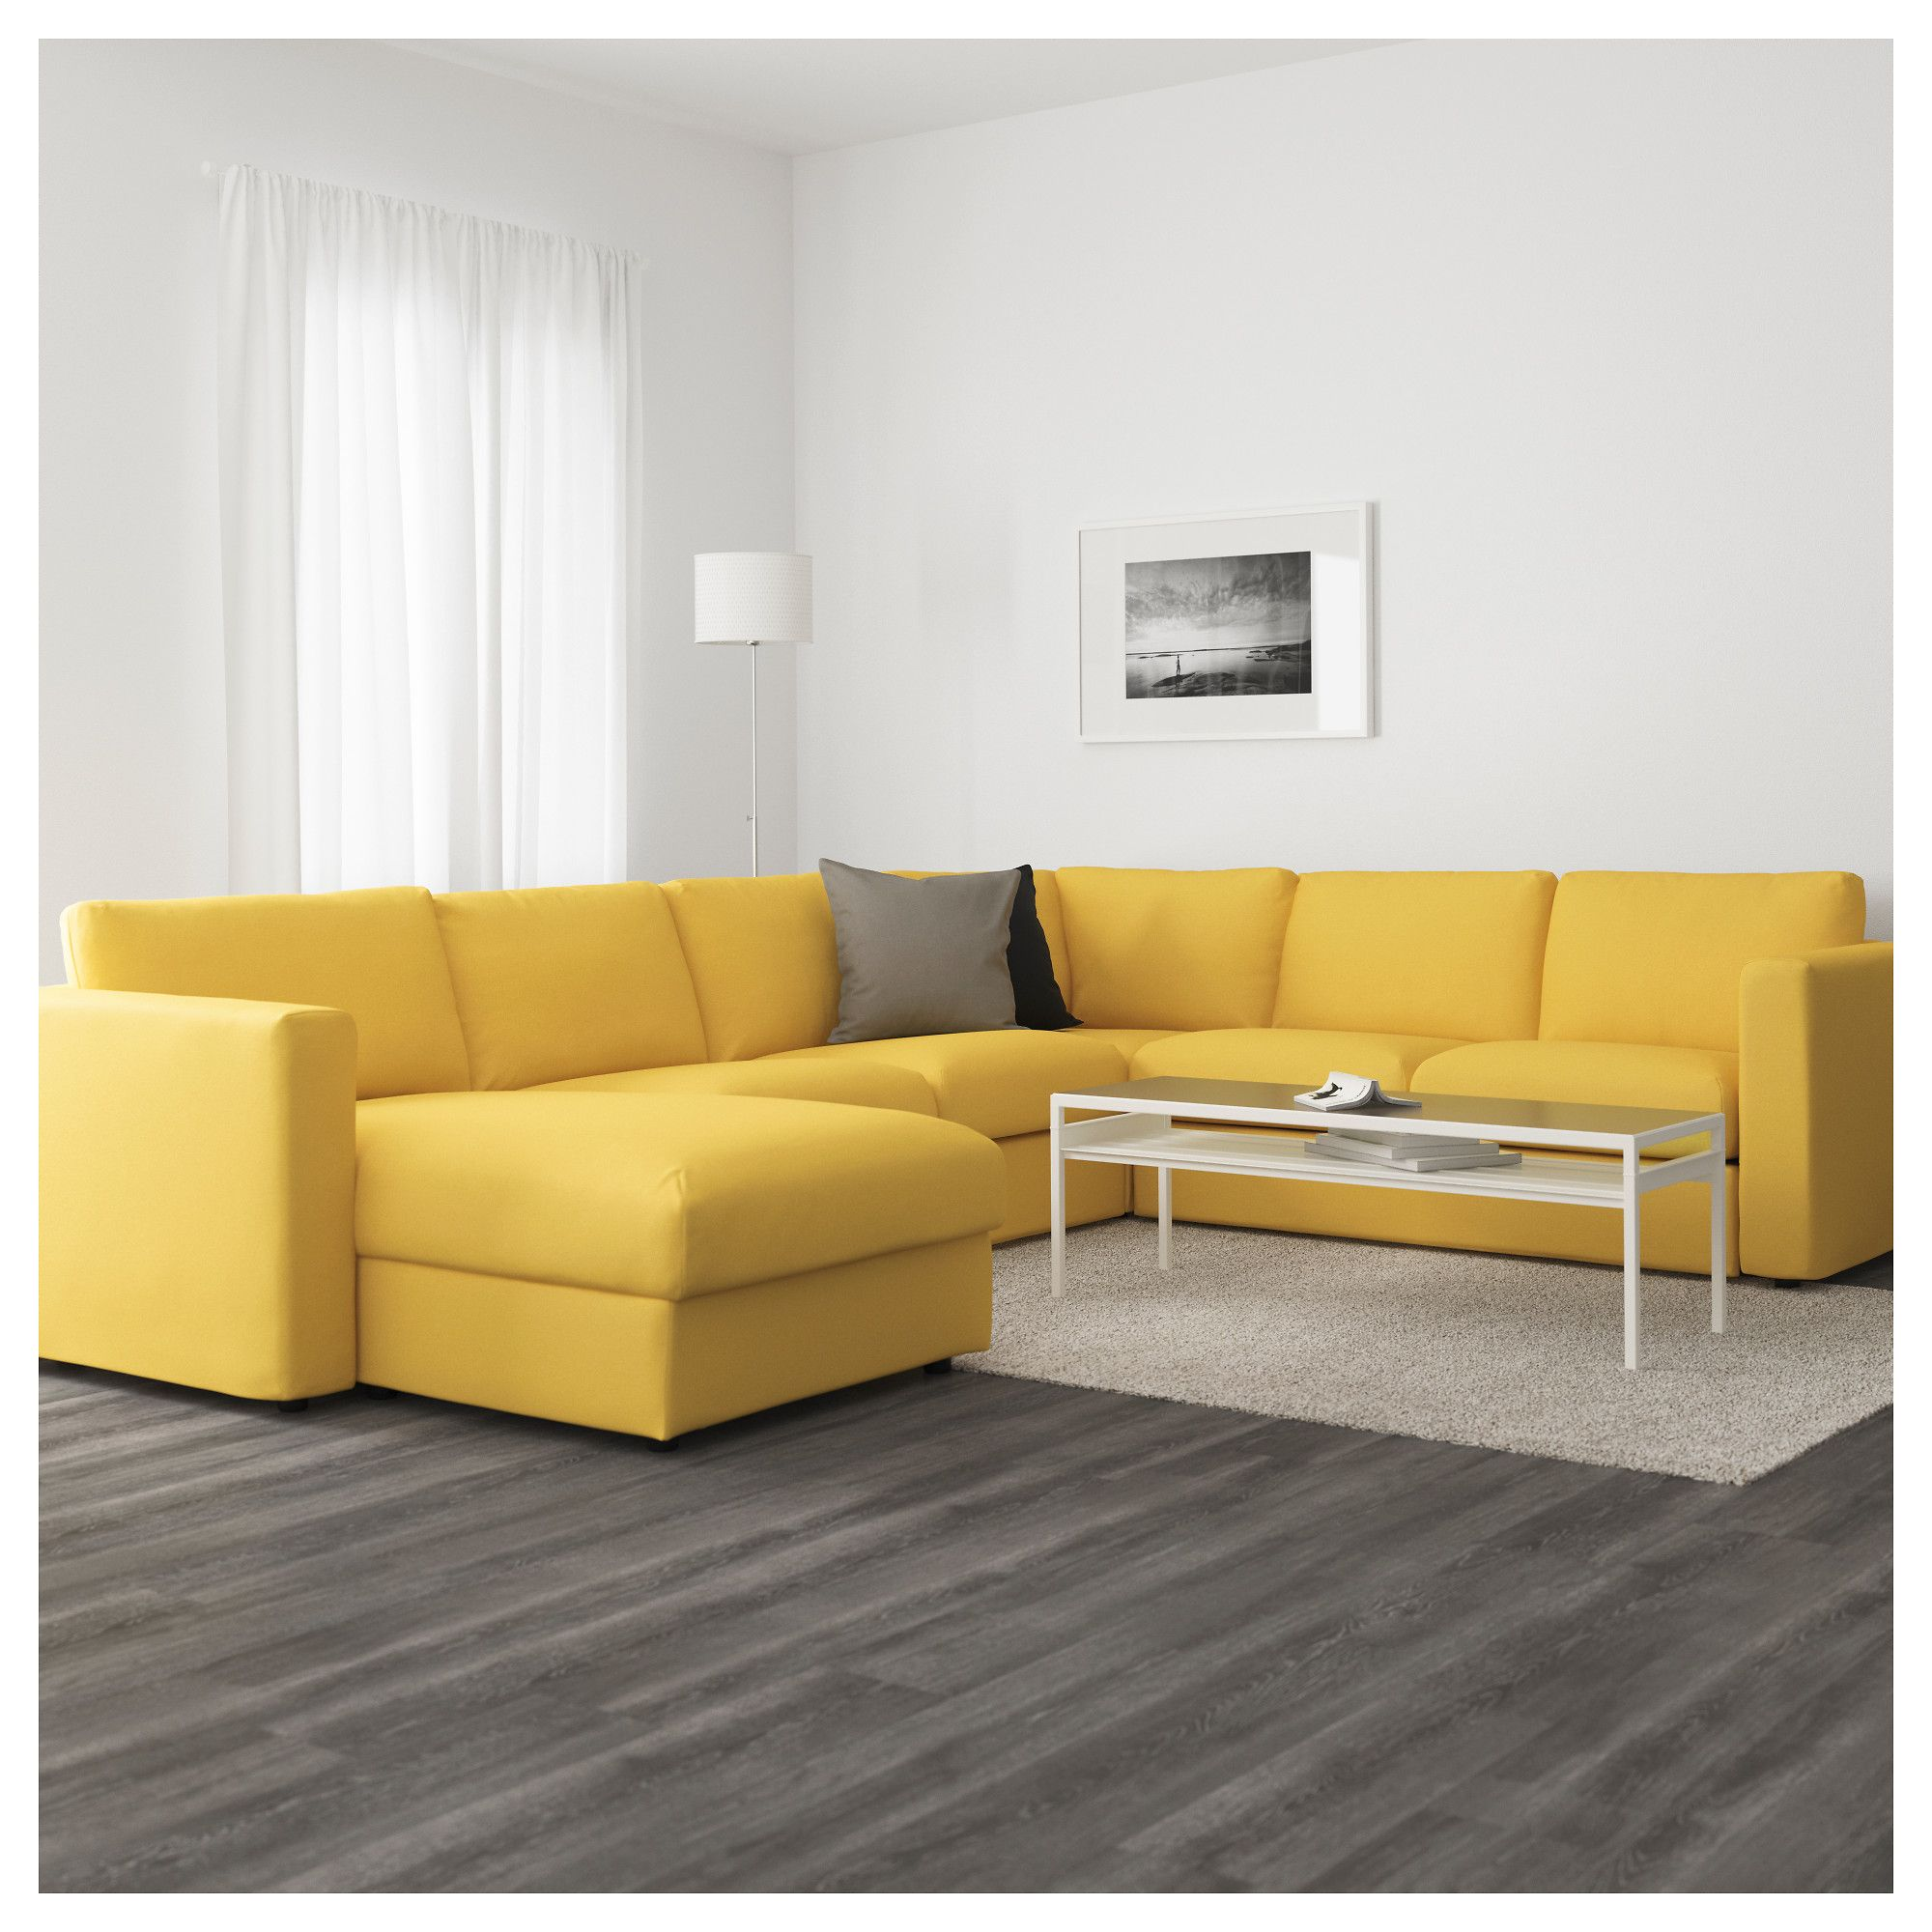 Orrsta Golden Yellow: VIMLE Sectional, 5-seat Corner With Chaise, Orrsta